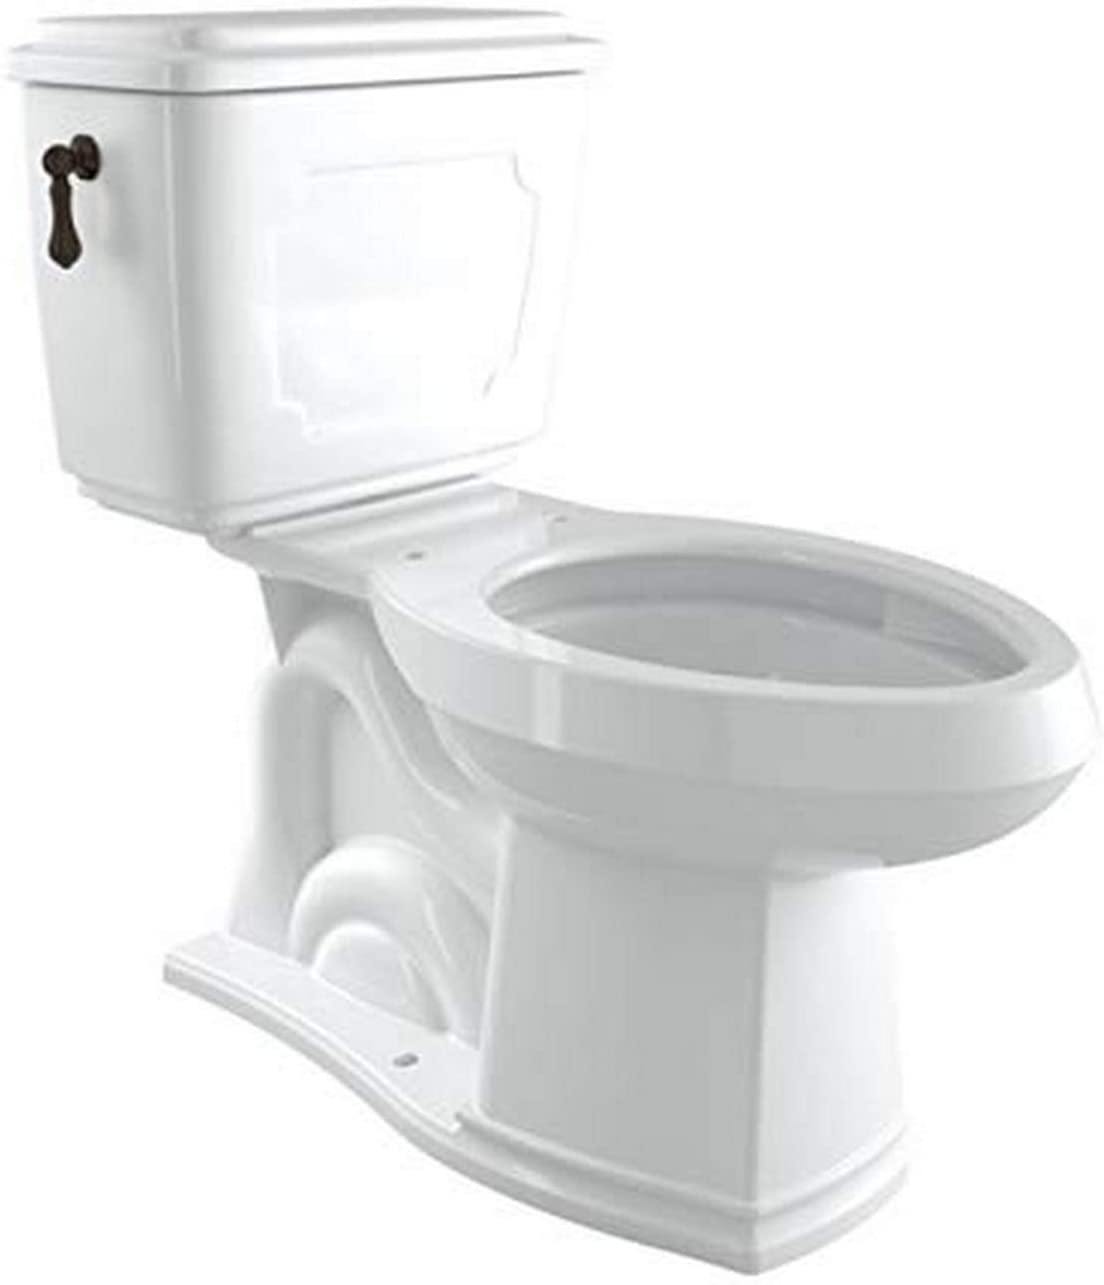 Rohl U.KIT113-TCB Kit Perrin & Rowe Victorian Close Coupled Water Closet 1.28 Gpf Complete with 9440 Standard Metal Flush Lever, Tuscan Brass